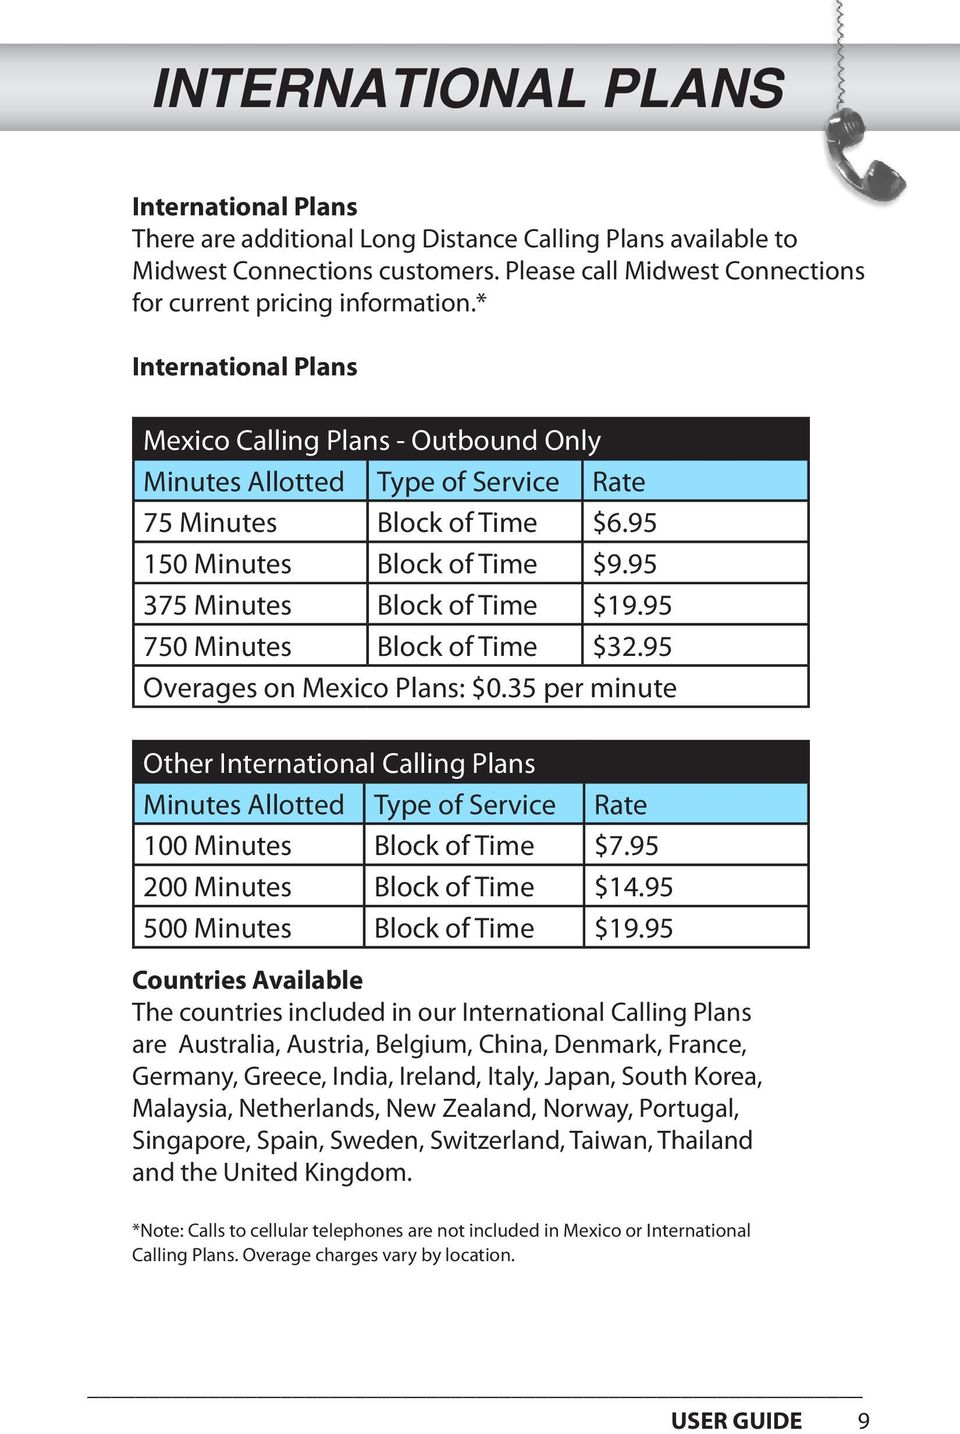 95 750 Minutes Block of Time $32.95 Overages on Mexico Plans: $0.35 per minute Other International Calling Plans Minutes Allotted Type of Service Rate 100 Minutes Block of Time $7.